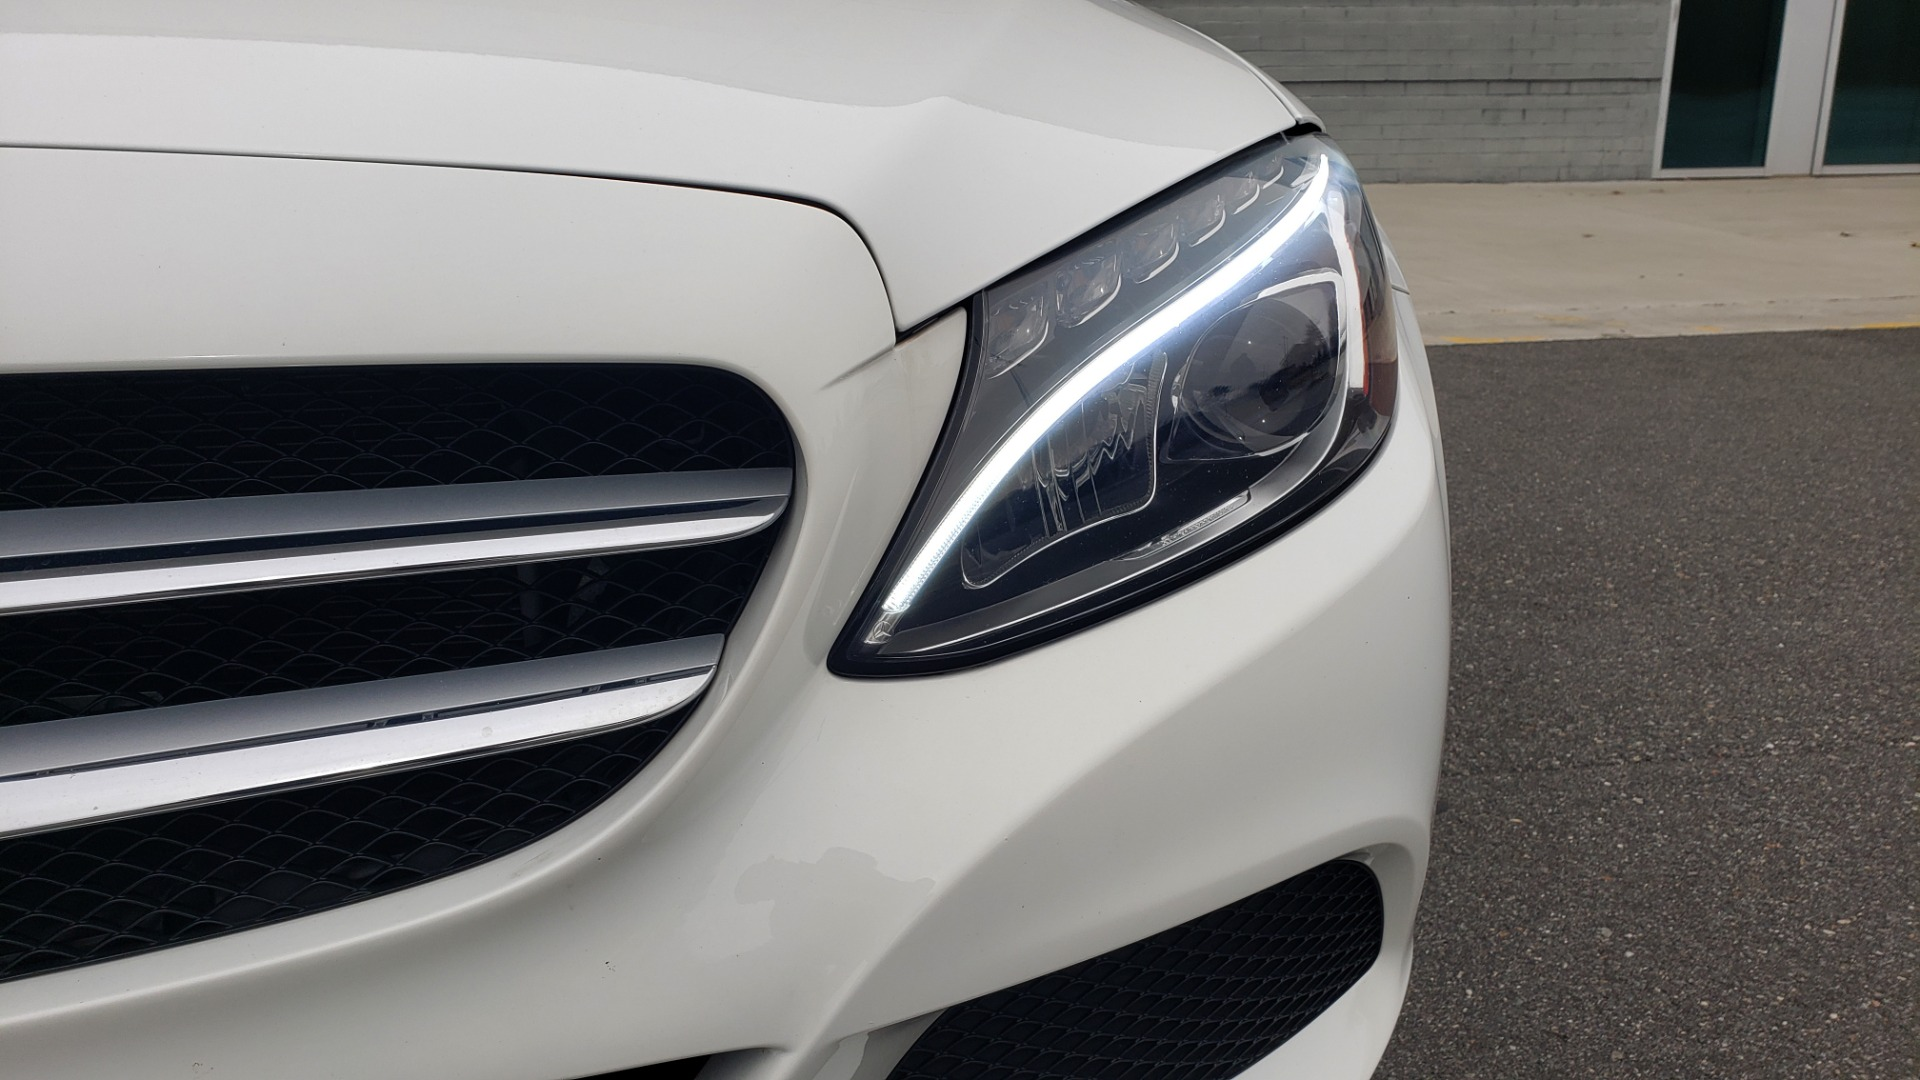 Used 2018 Mercedes-Benz C-CLASS C 300 PREMIUM / NAV / HTD STS / APPLE CARPLAY / REARVIEW for sale Sold at Formula Imports in Charlotte NC 28227 22